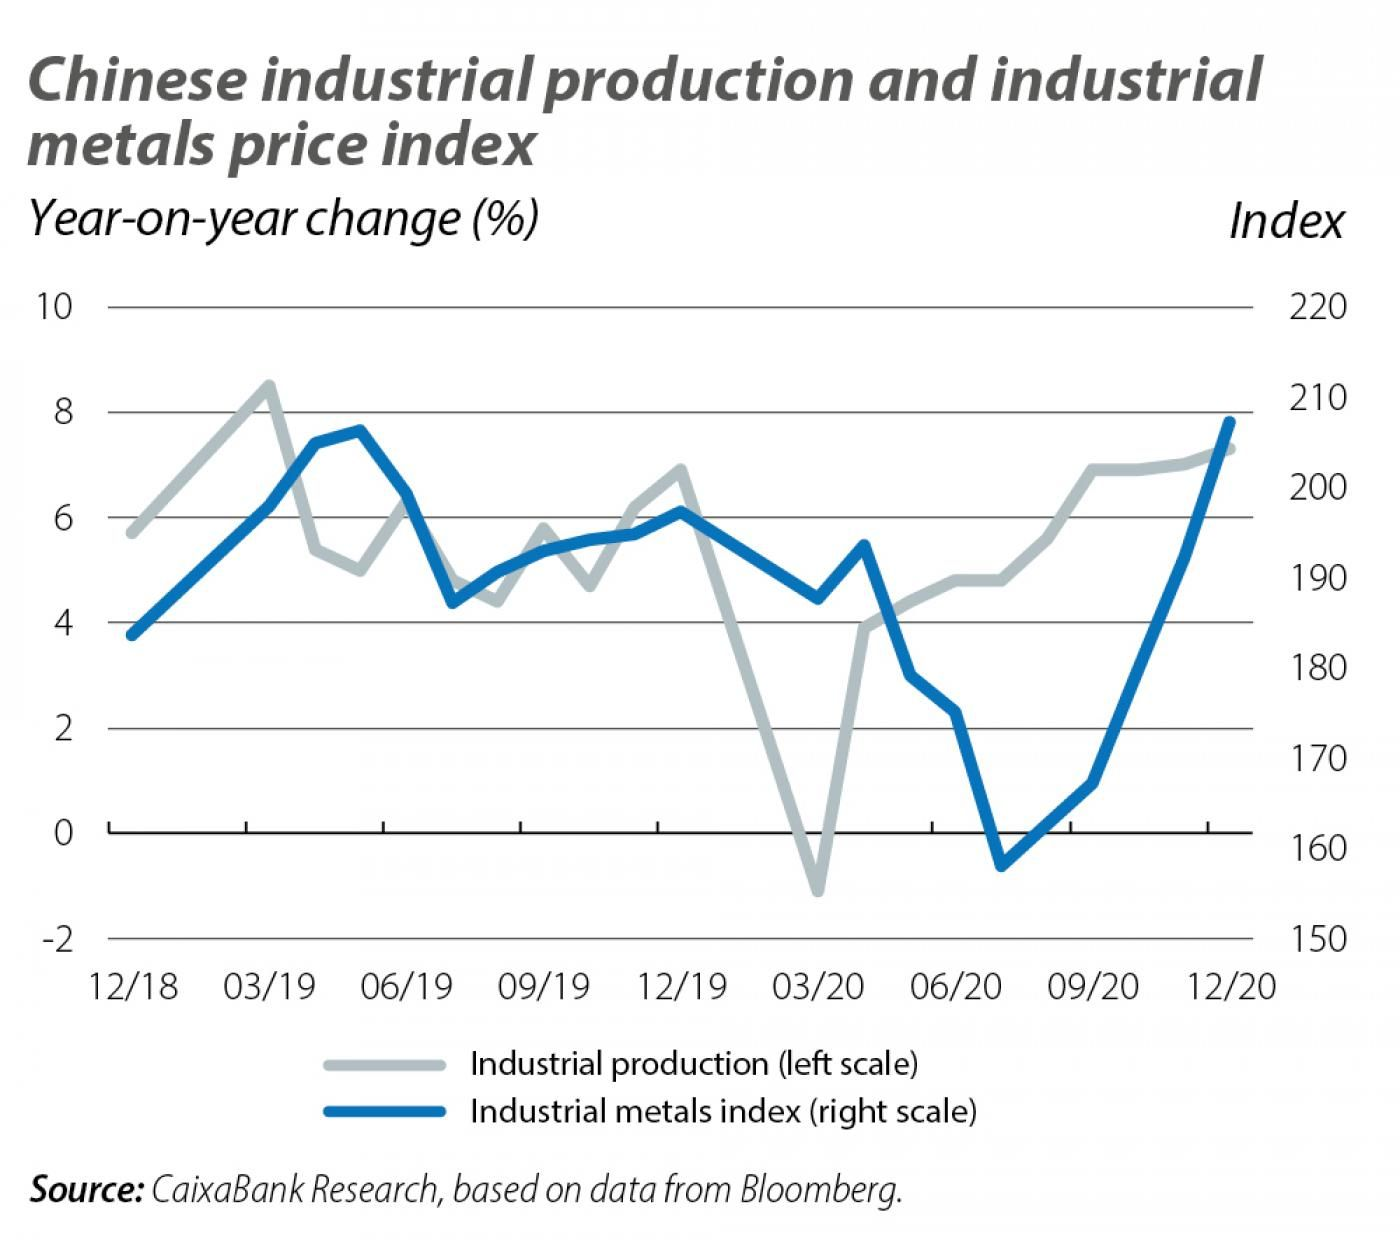 Chinese industrial production and industrial metals price index